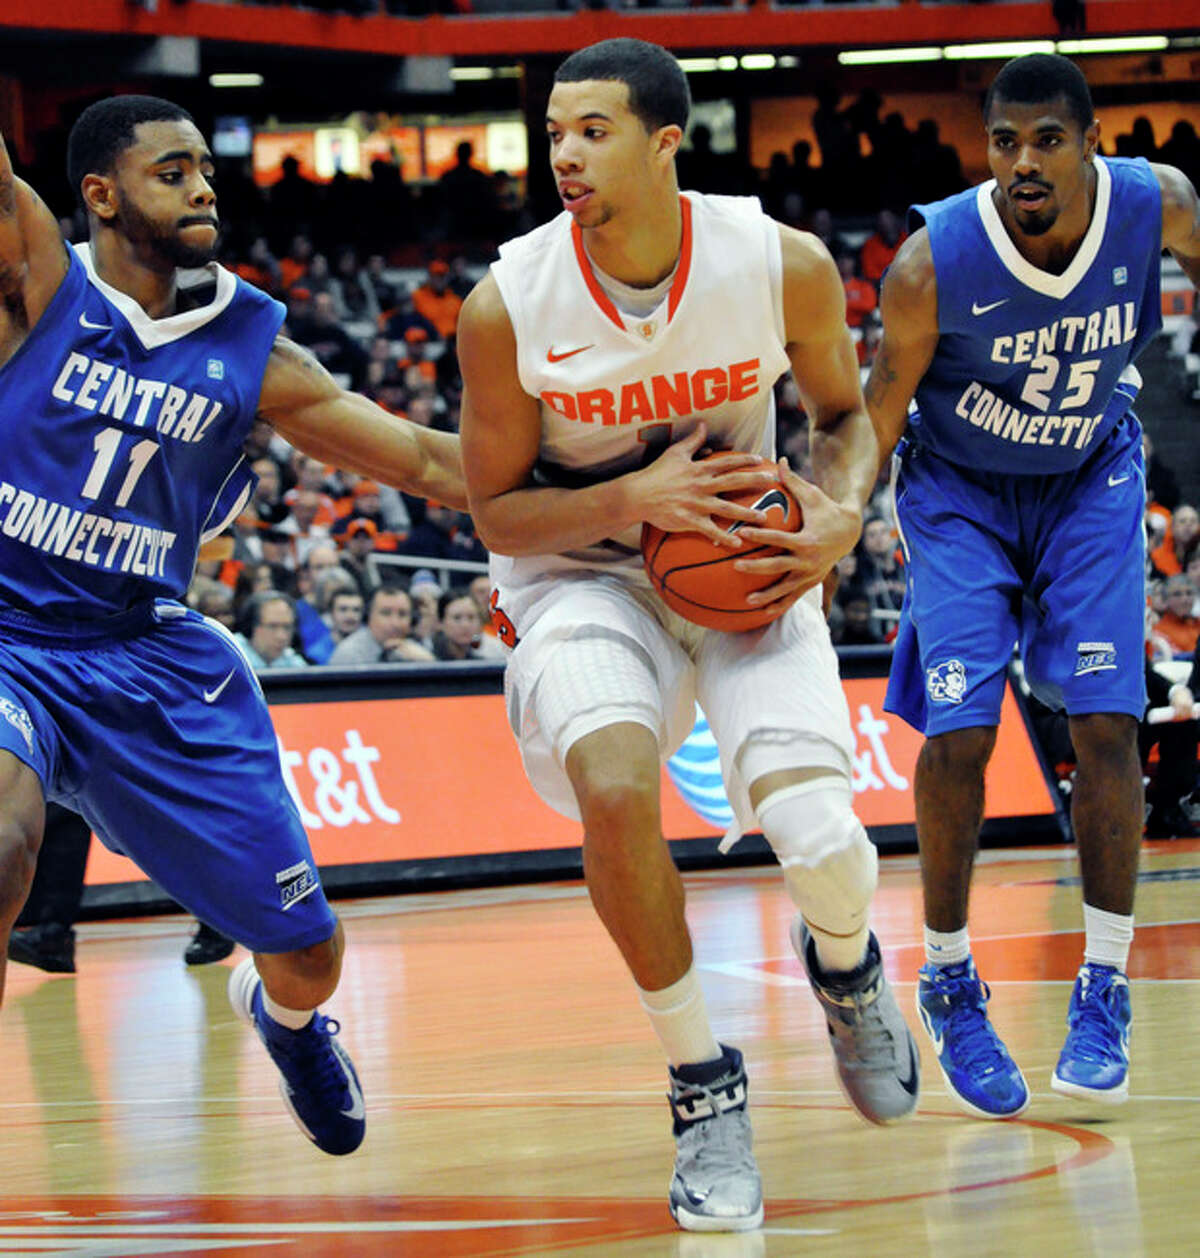 Syracuse's Michael Carter-Williams drives against Central Connecticut State's Malcolm McMillan, left, as Matt Hunter, right, watches during the second half of an NCAA college basketball game in Syracuse, N.Y., Monday, Dec. 31, 2012. Syracuse won 96-62. (AP Photo/Kevin Rivoli)